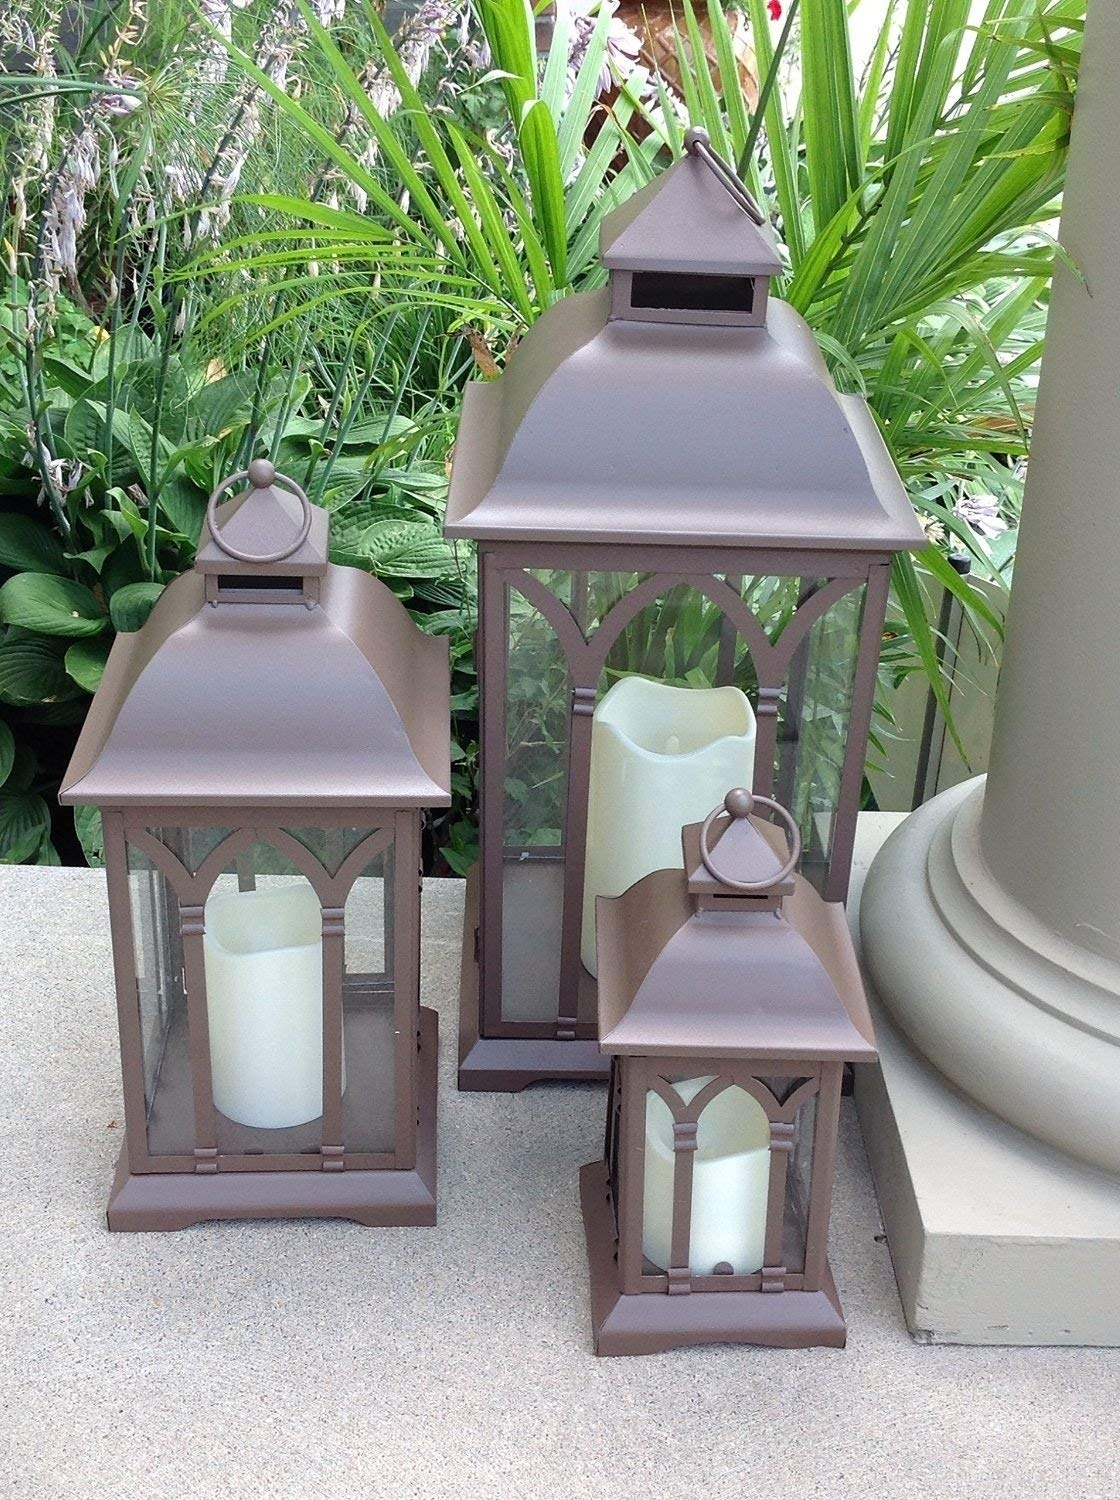 Amazon : Pebble Lane Living 3Pc Set Of Outdoor Large Indoor Or Intended For Set Of 3 Outdoor Lanterns (View 1 of 20)